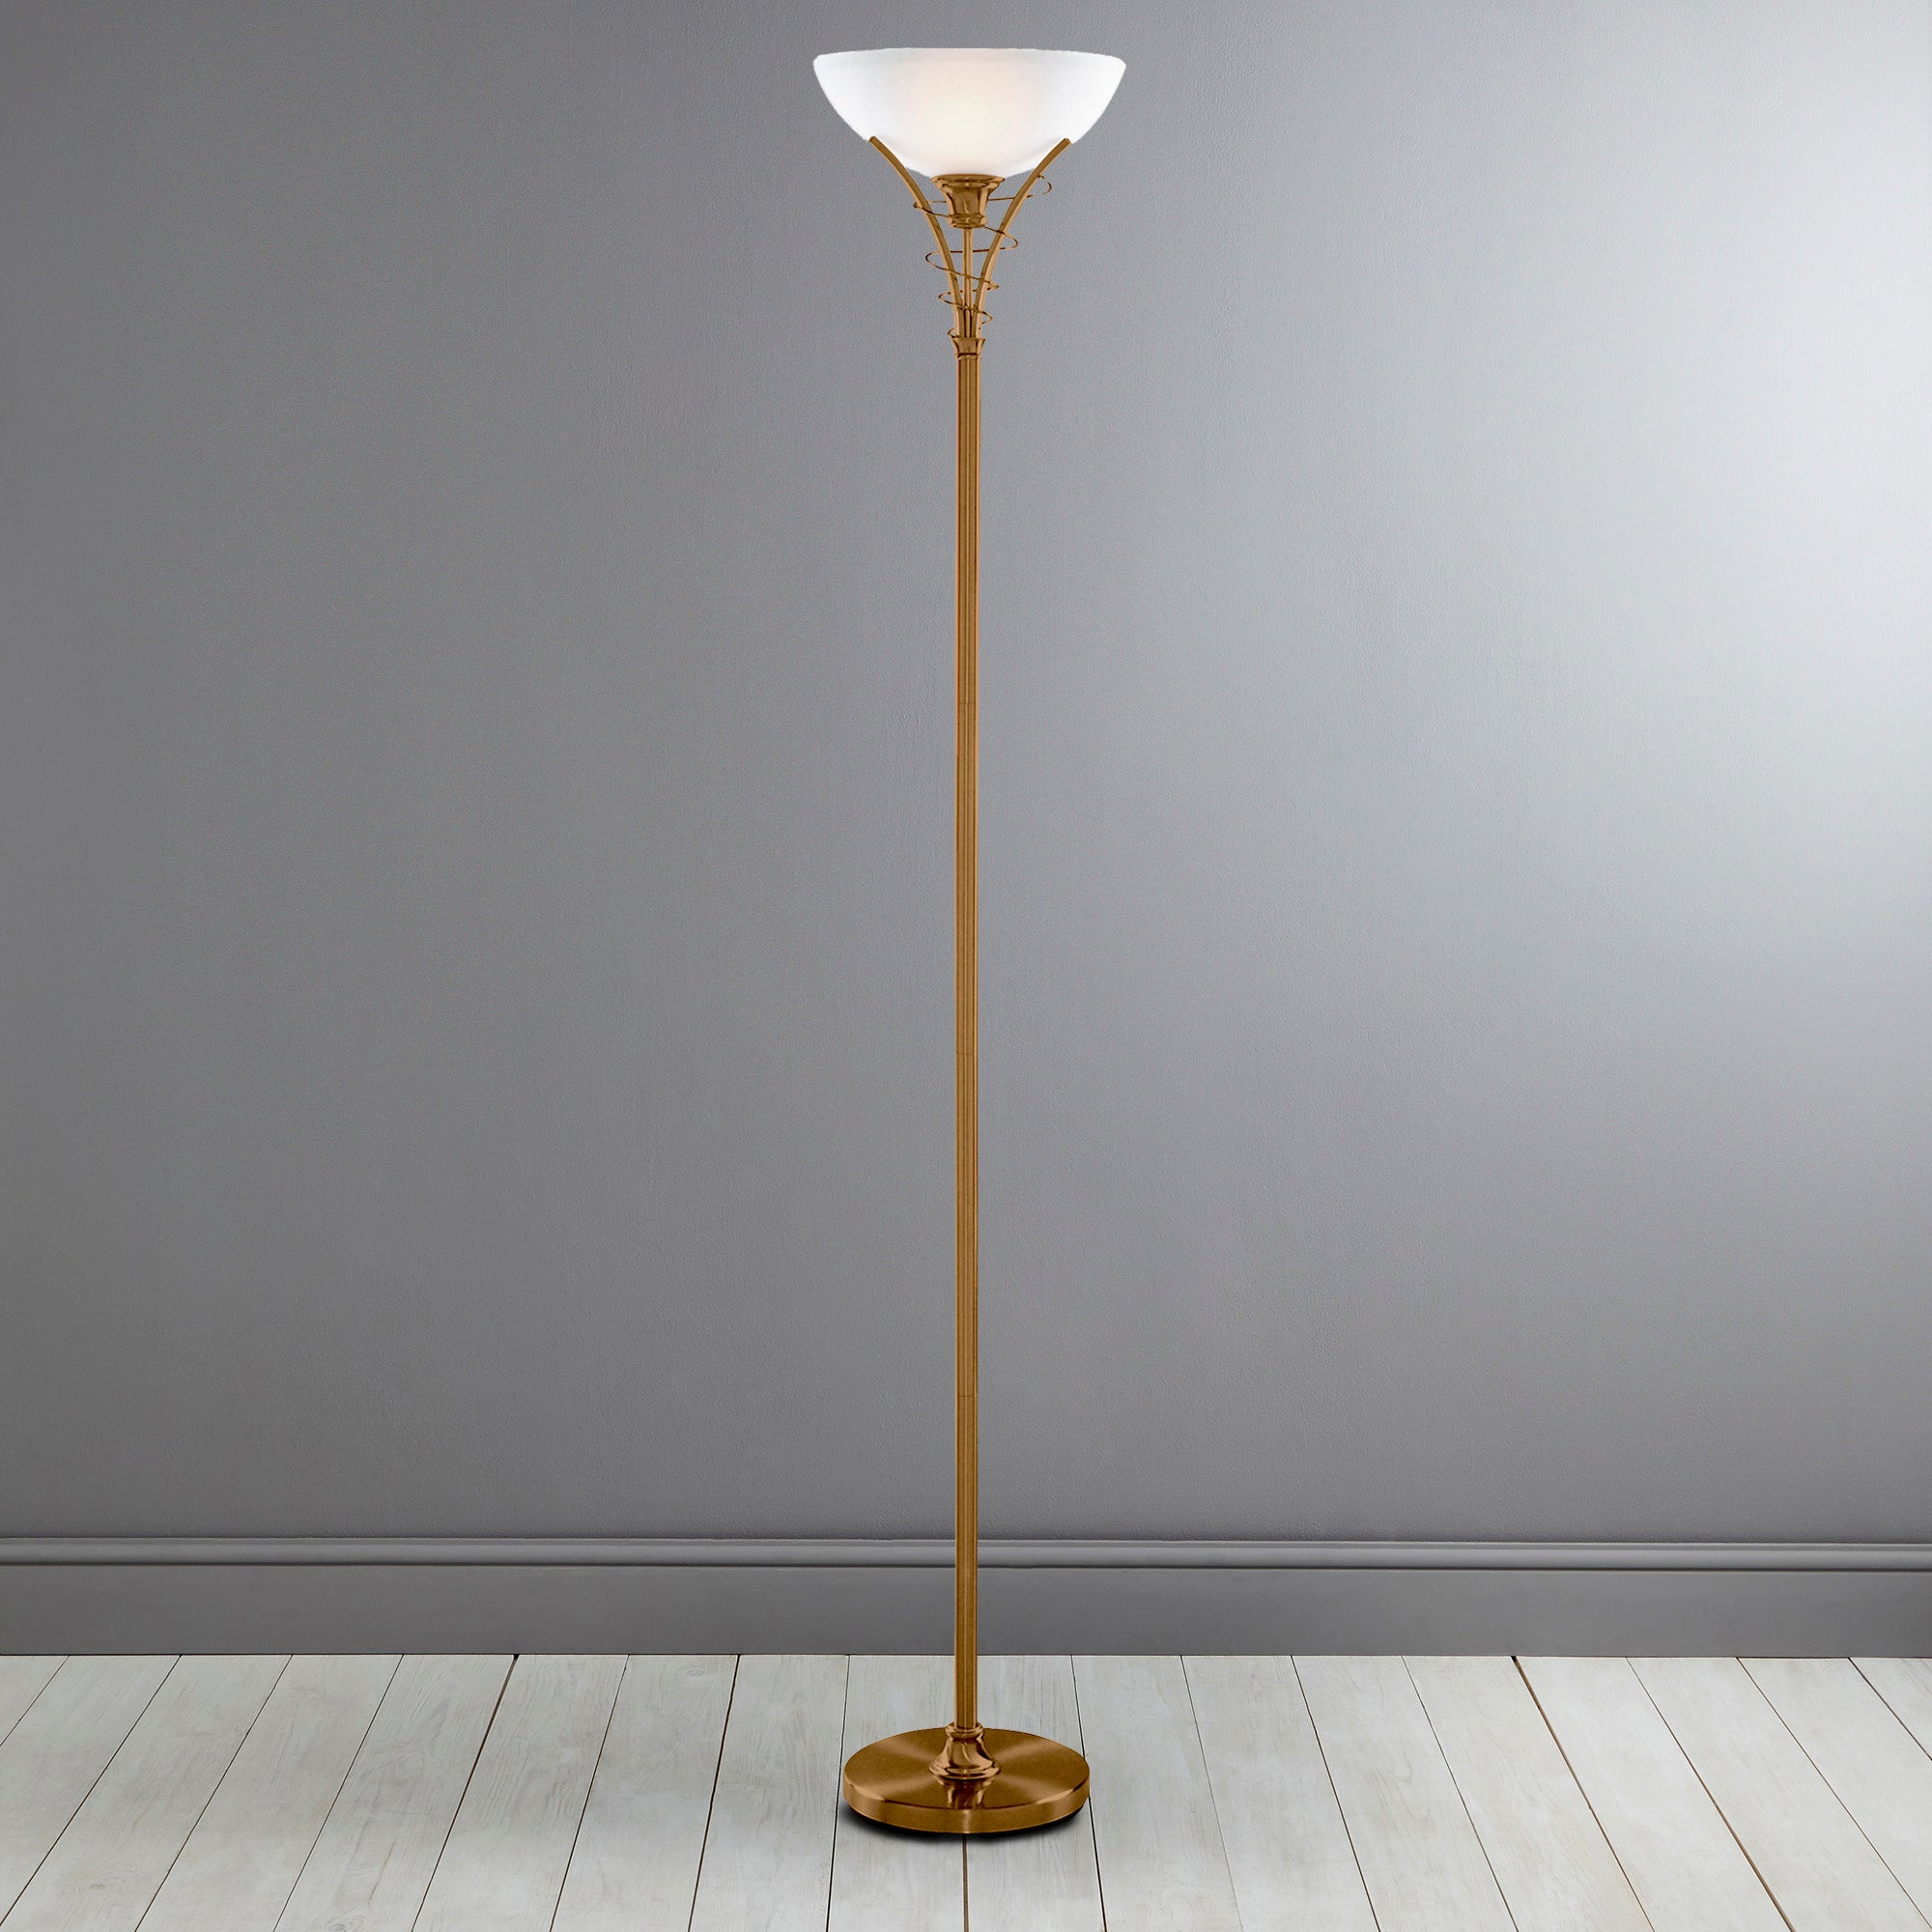 Antique floor lamp shop for cheap lighting and save online for Messina floor lamp antique brass